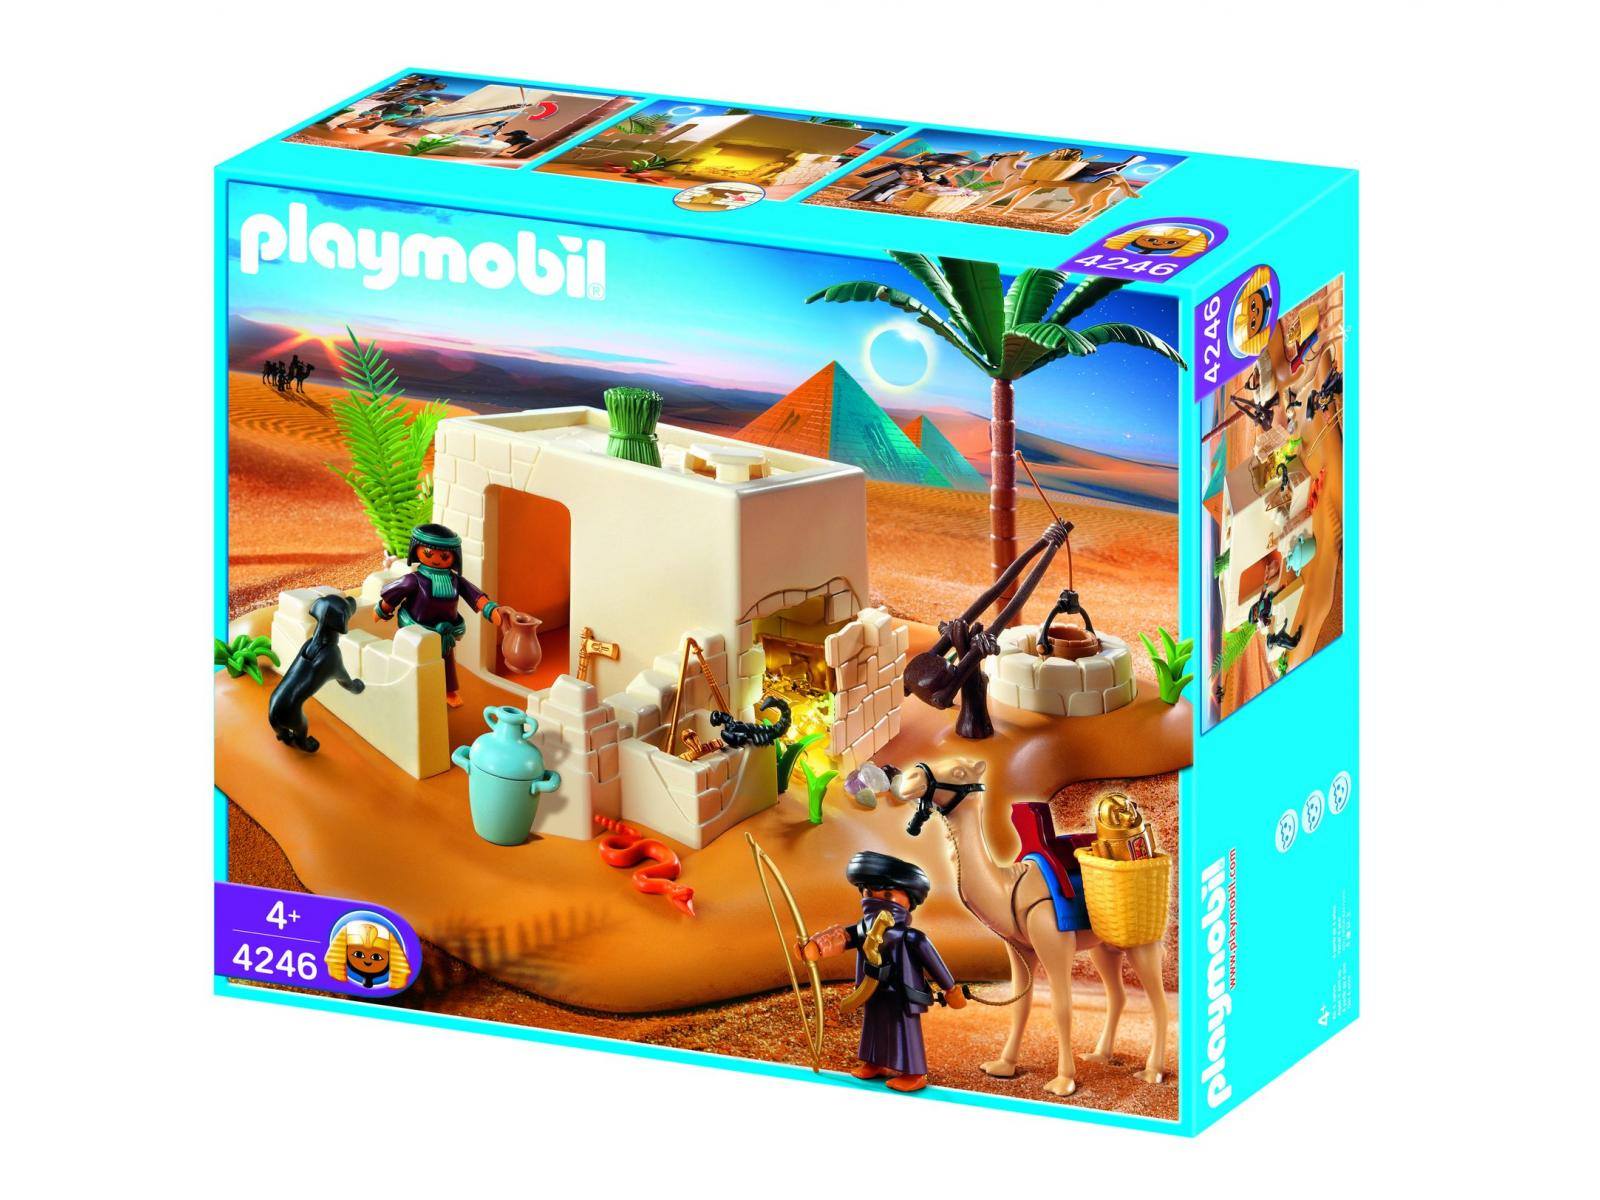 Toys 4 Kids Gt Playmobil Gt Moderne Luxe Villa Gt Moderne Lux Pictures ...